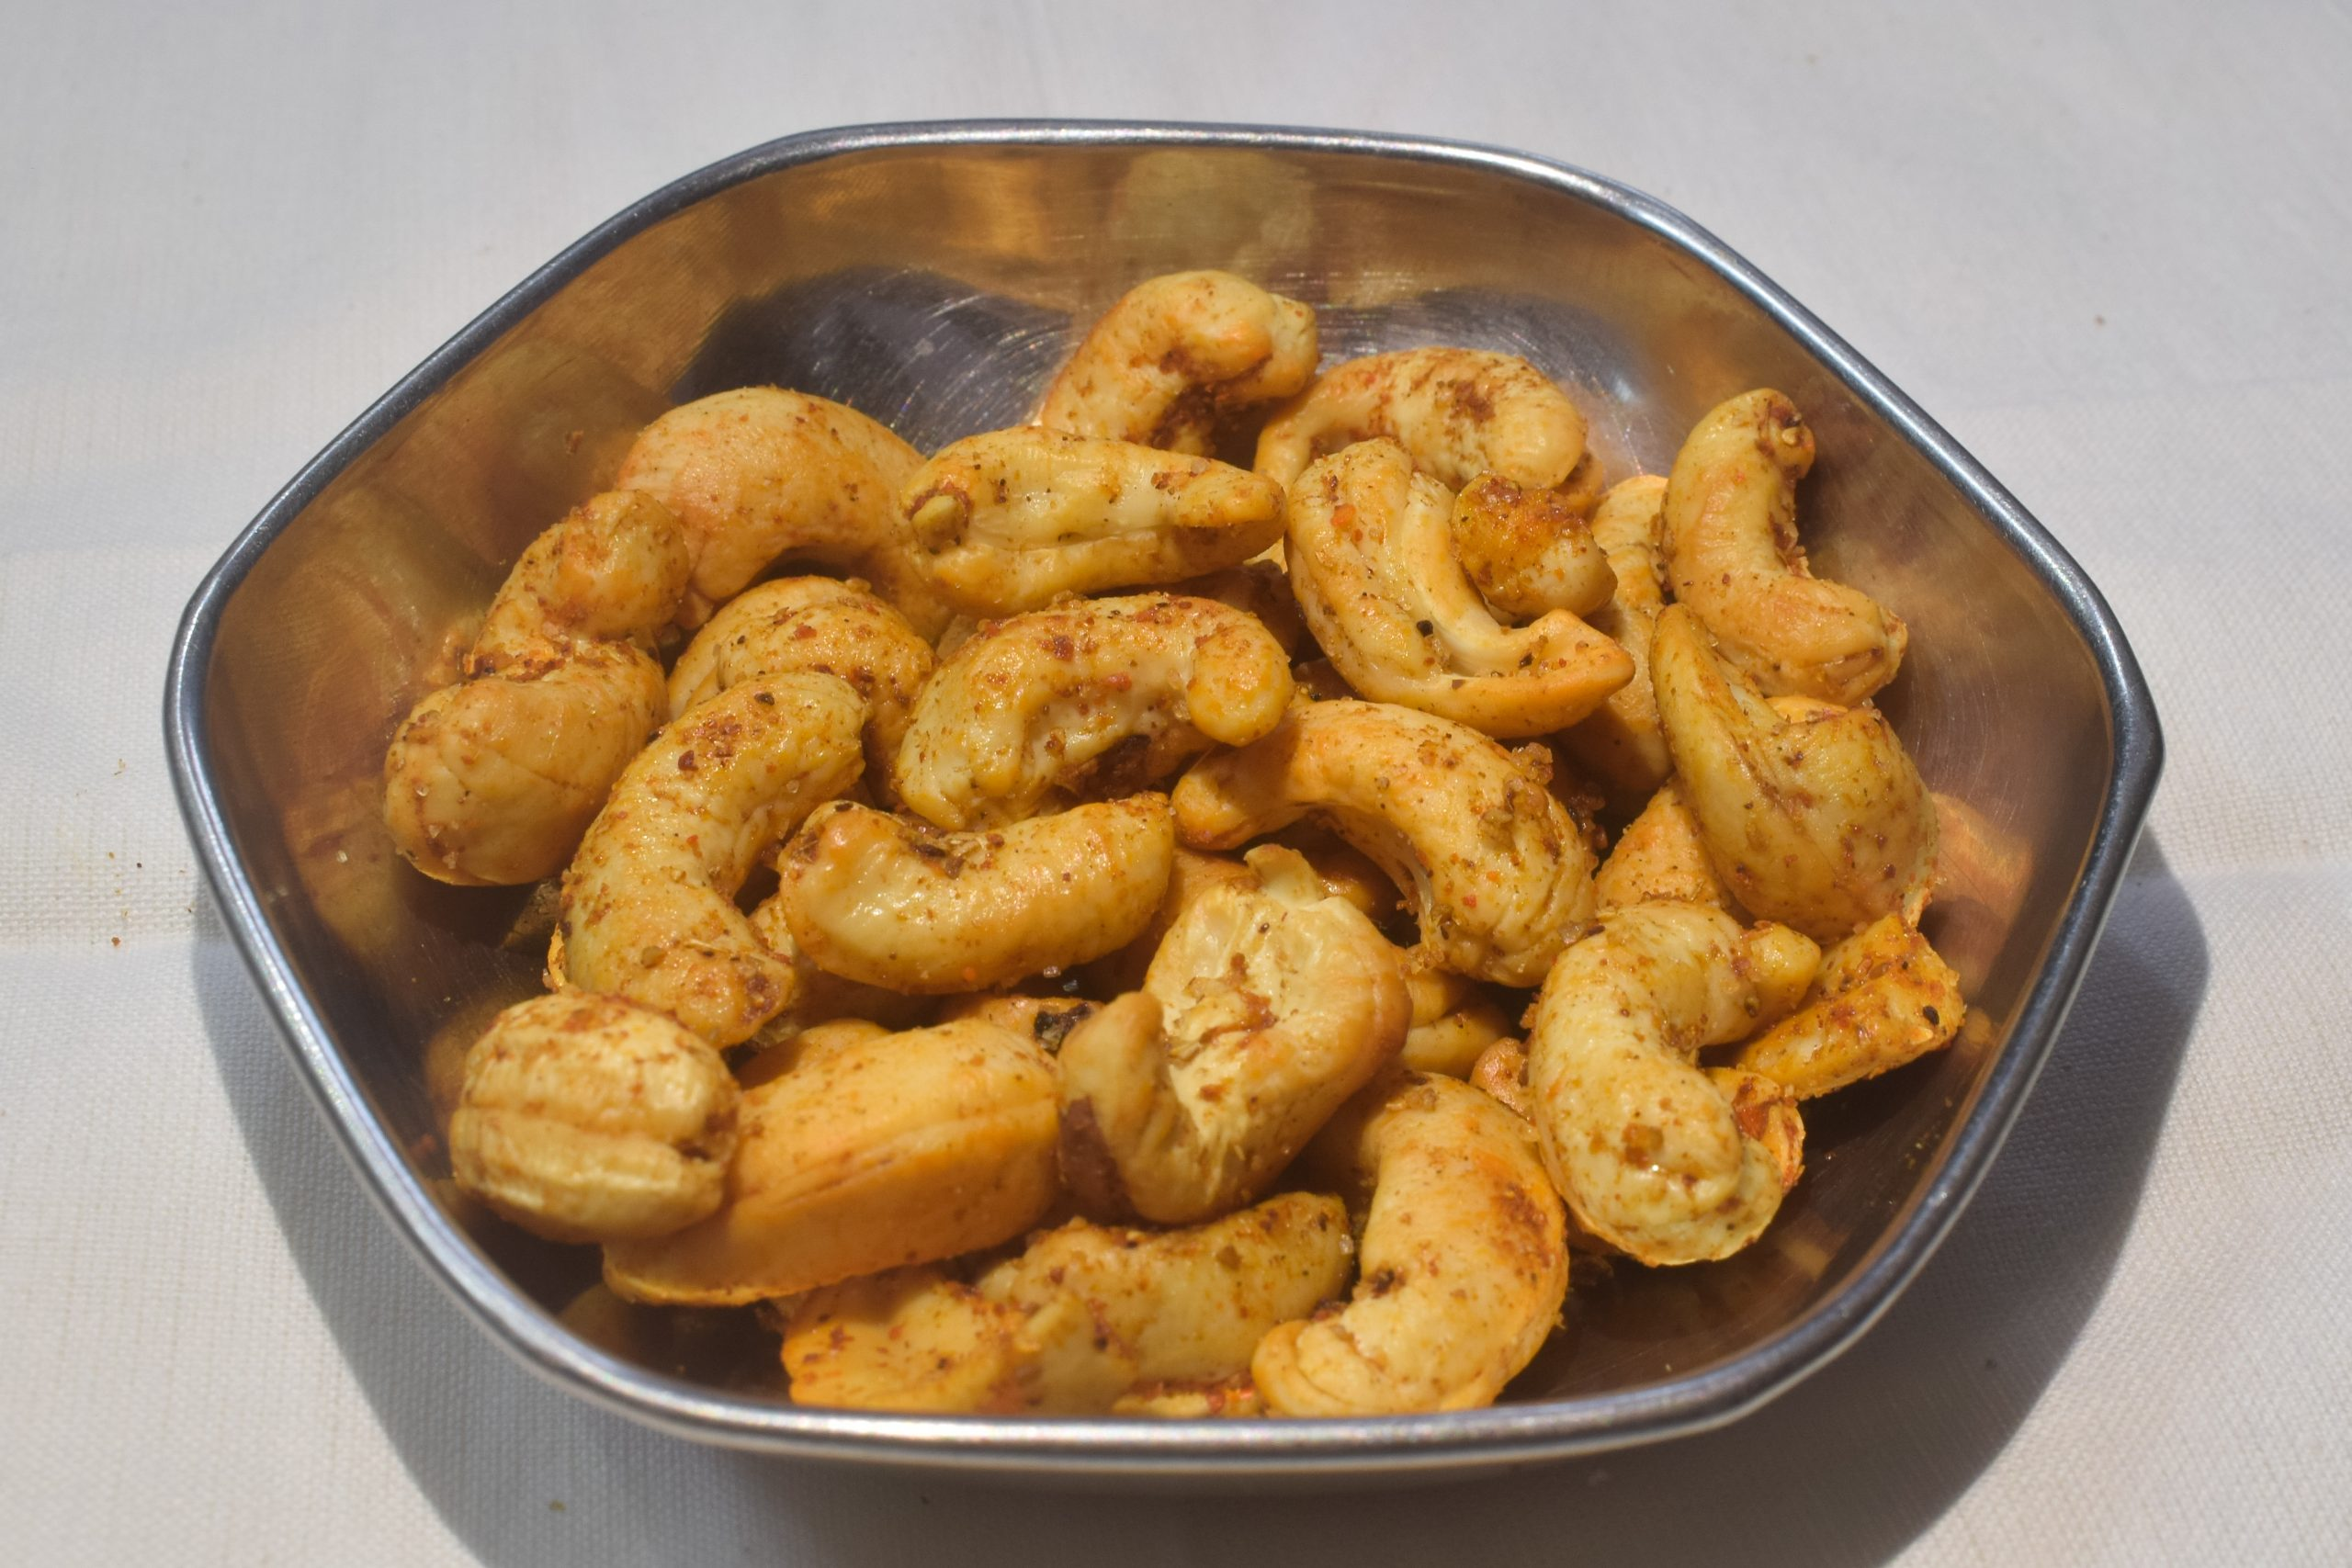 Roasted cashew in a plate